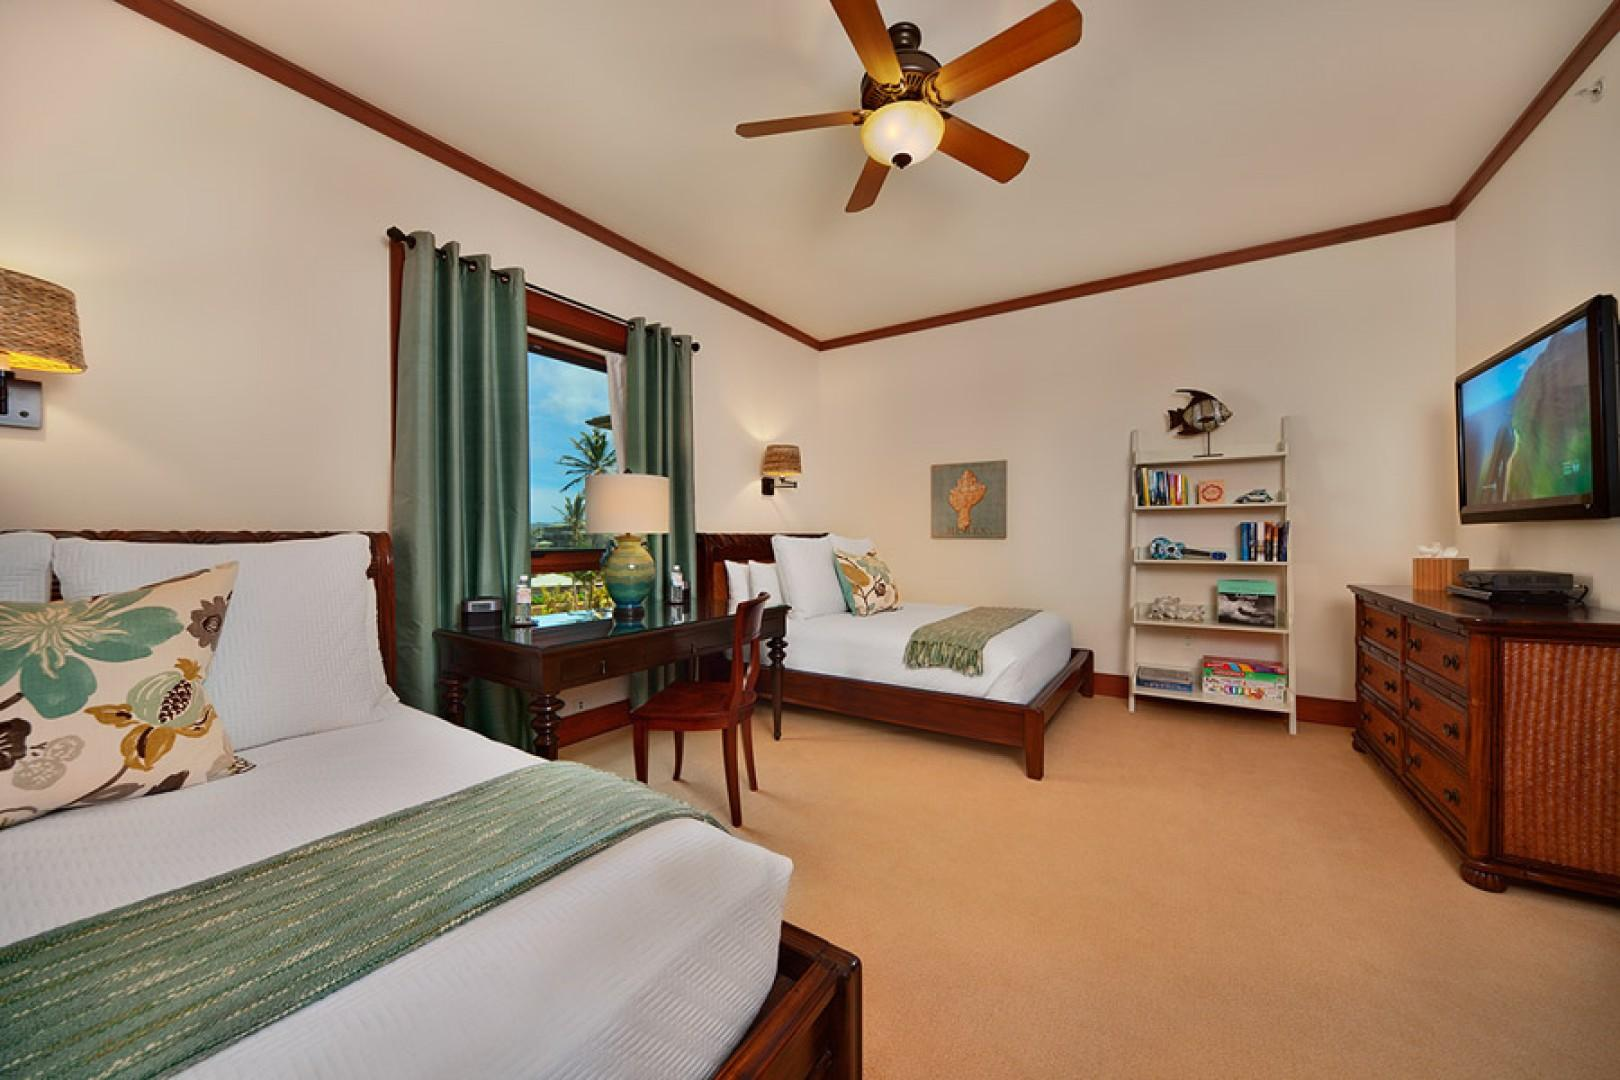 Sea Mist Villa 2403 - Bedroom Three with 2 Queen Beds with Deluxe Mattresses, Desk & Chair, iPod Dock, HD Television & HD Cable, HD CD/DVD, Dual Alarm Clocks, Private En-suite Bath